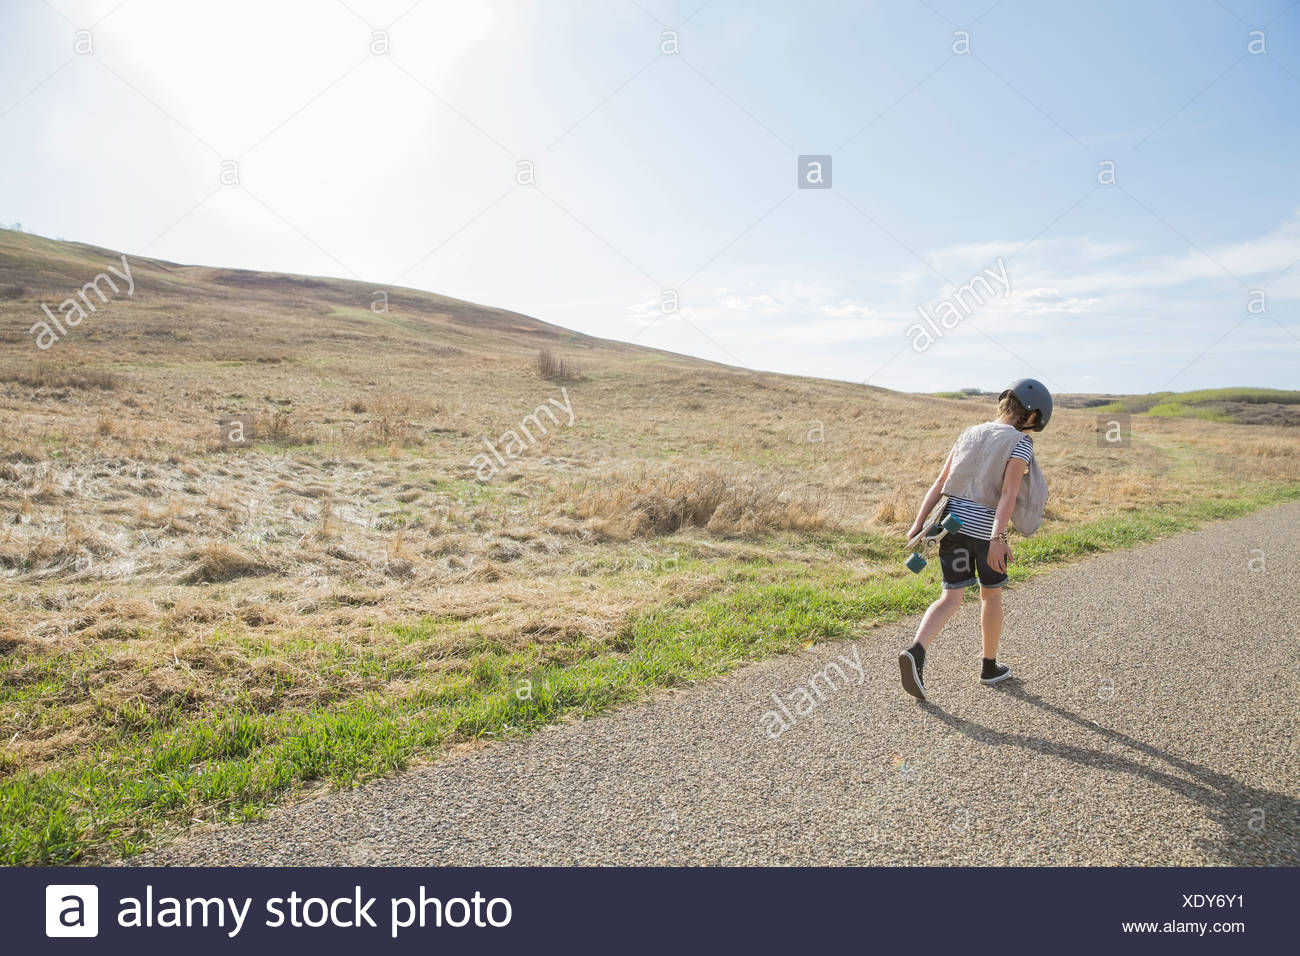 Rear view of girl walking on road with skateboard - Stock Image